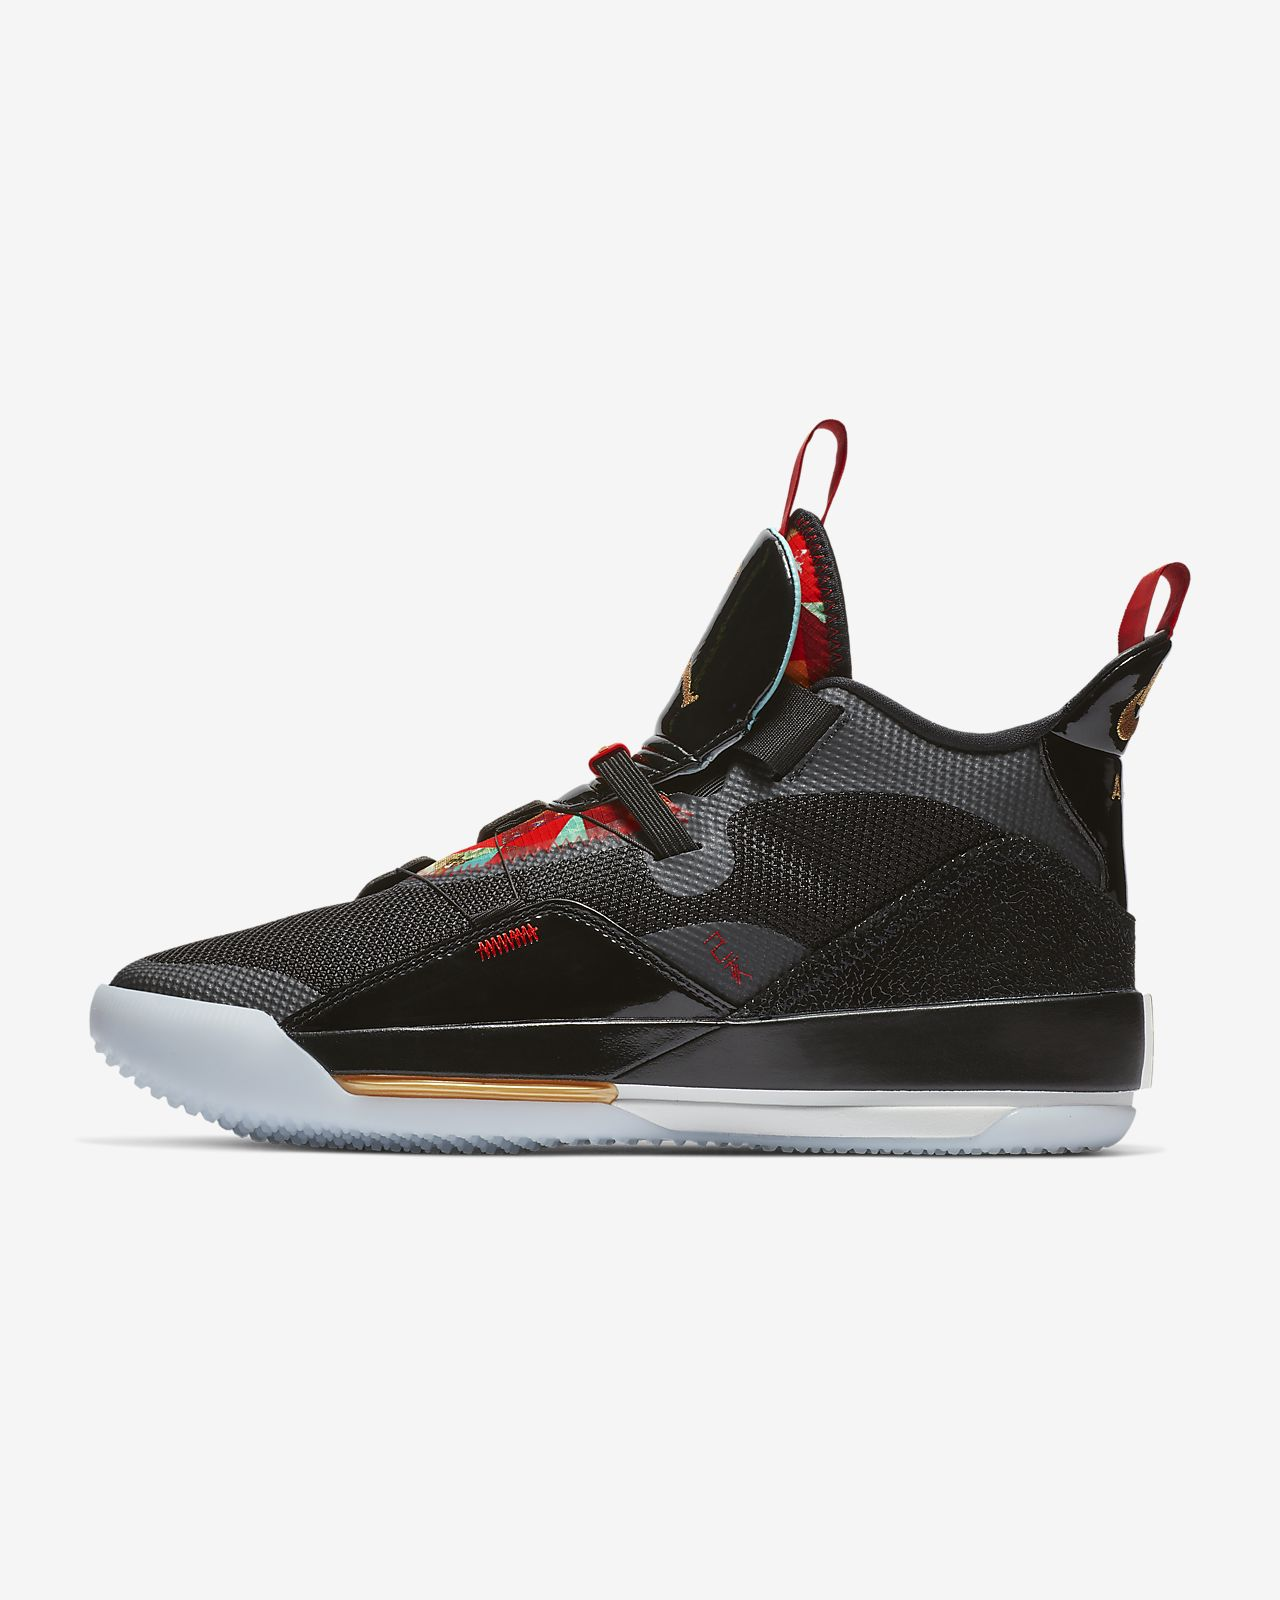 Air Jordan XXXIII Basketbol Ayakkabısı